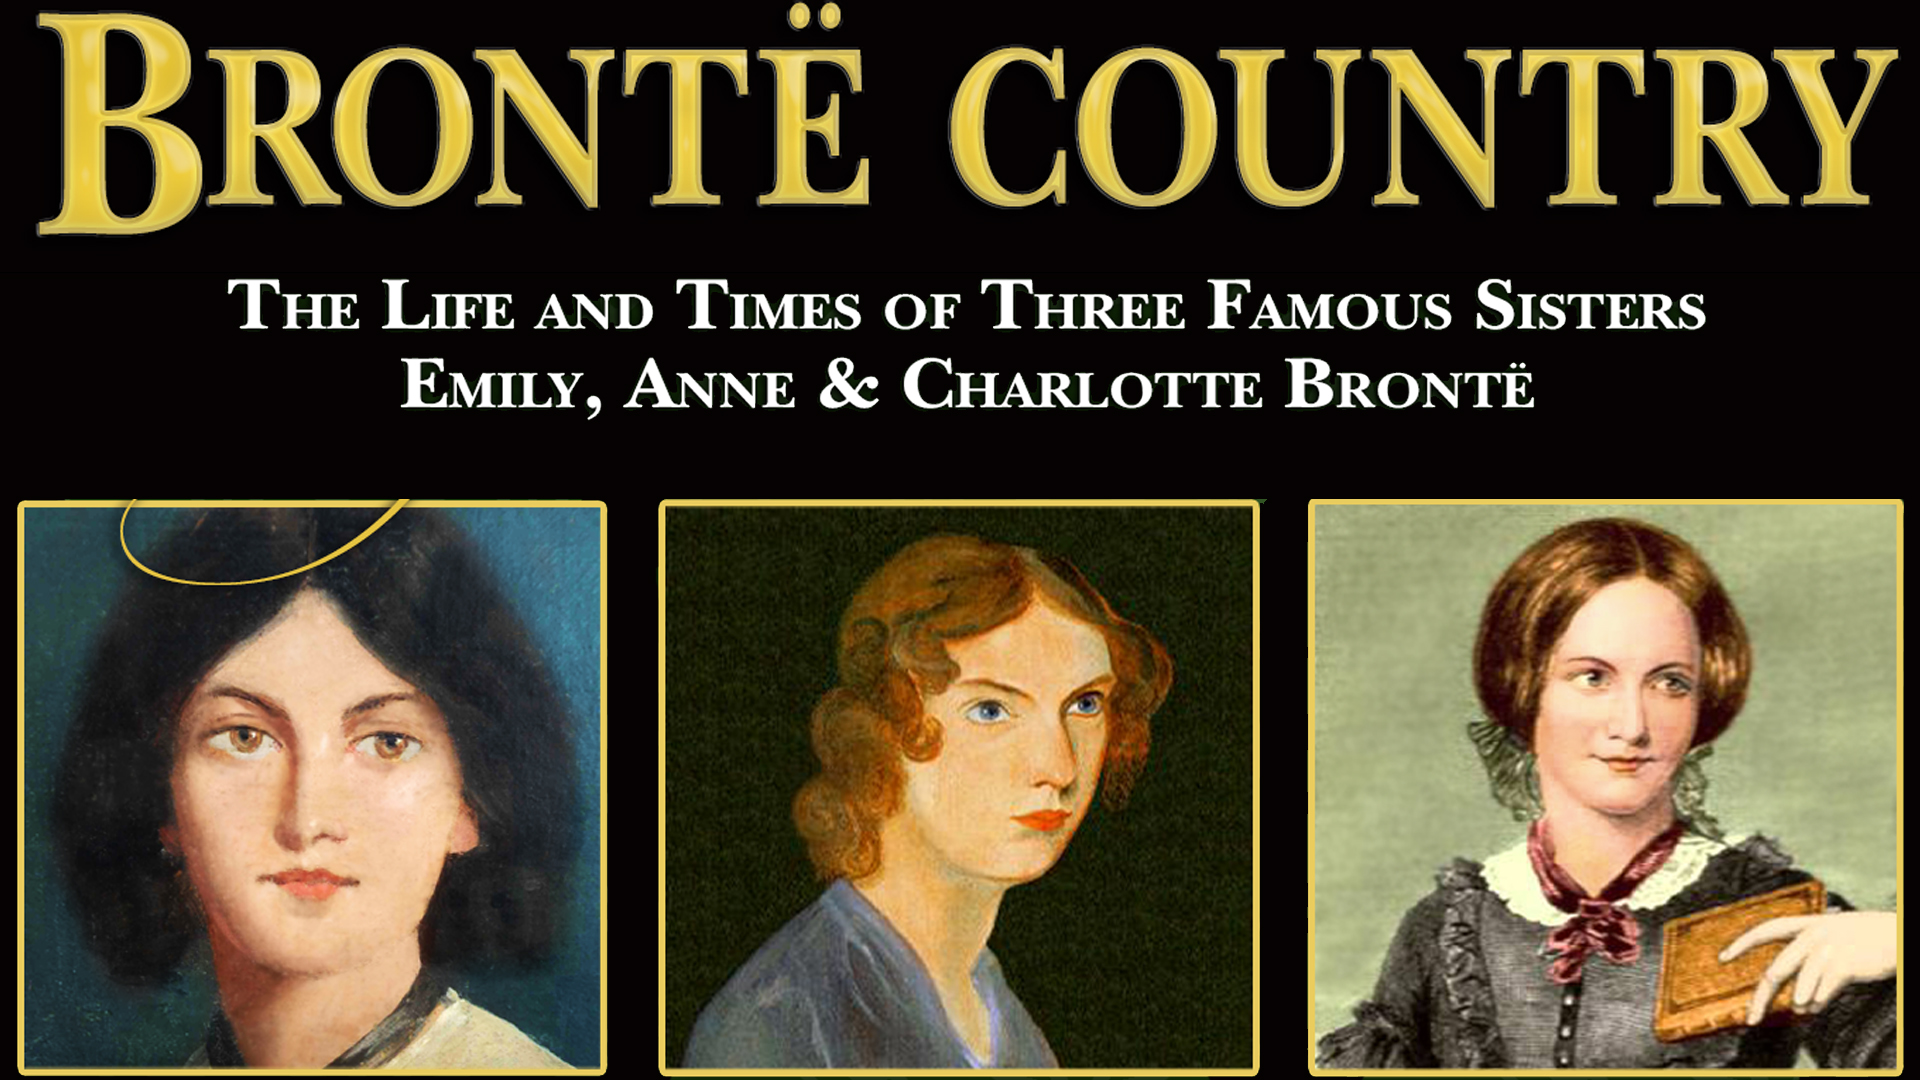 Brontë Country: The Life and Times of Three Famous Sisters, Emily, Anne & Charlotte Brontë